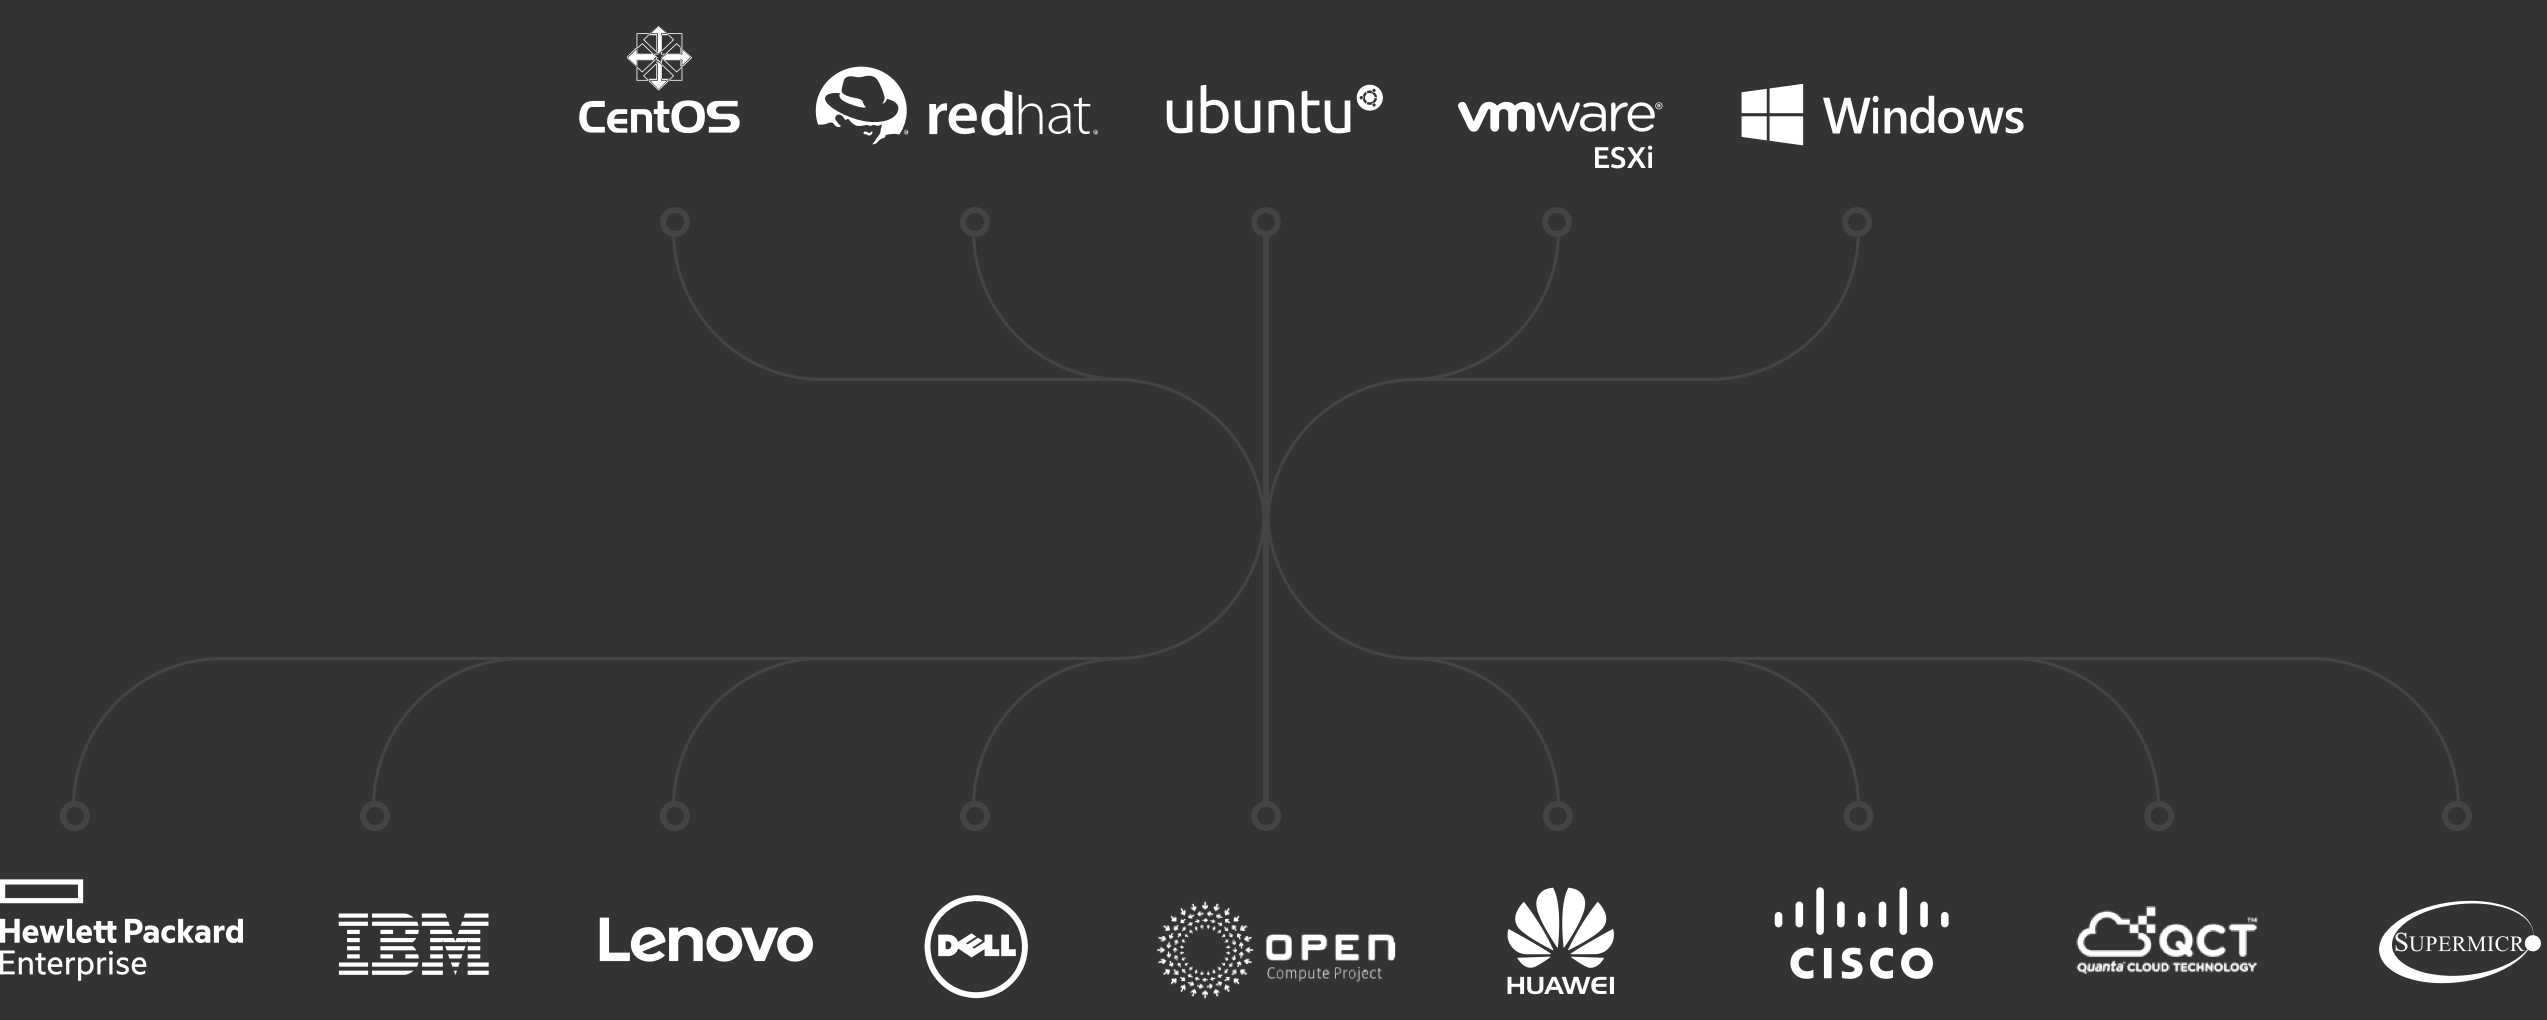 Ubuntu, Redhat, CentOS, Windows on IBM, HP, Lenovo, Quanta Cloud Technology, Dell, Open Compute Project, Huawei, Cisco